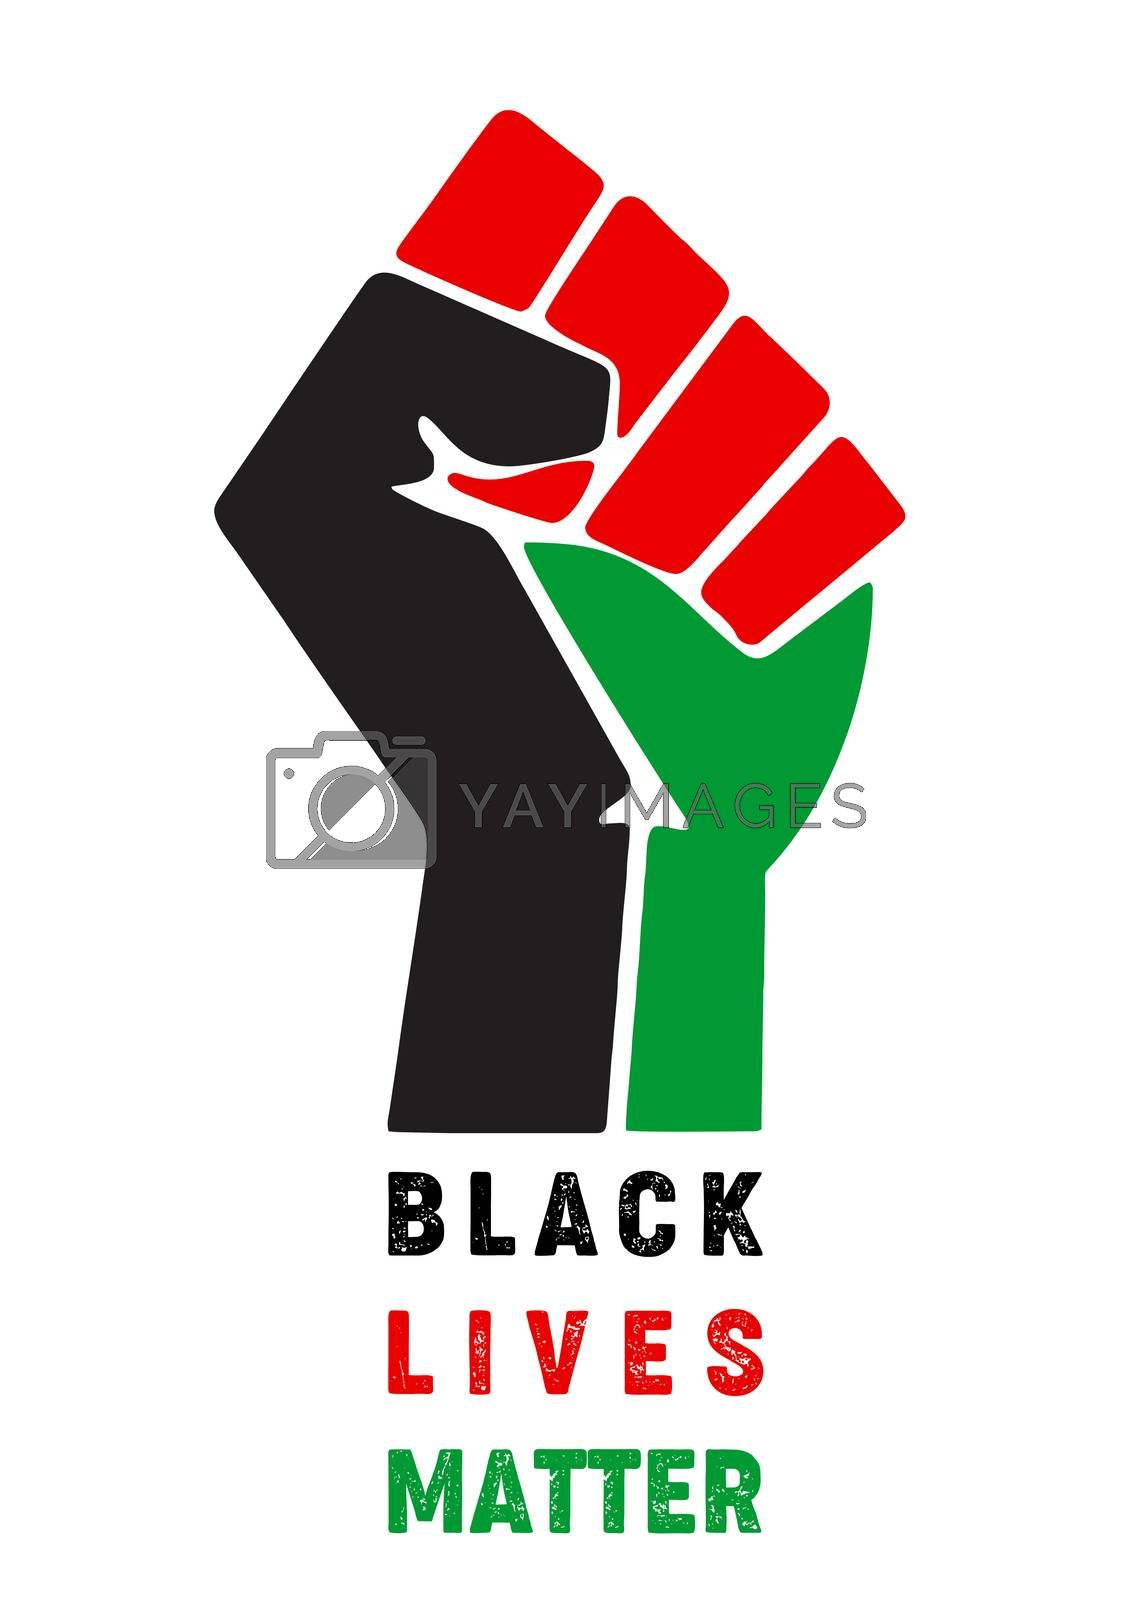 Royalty free image of Black Lives Matter by tony4urban